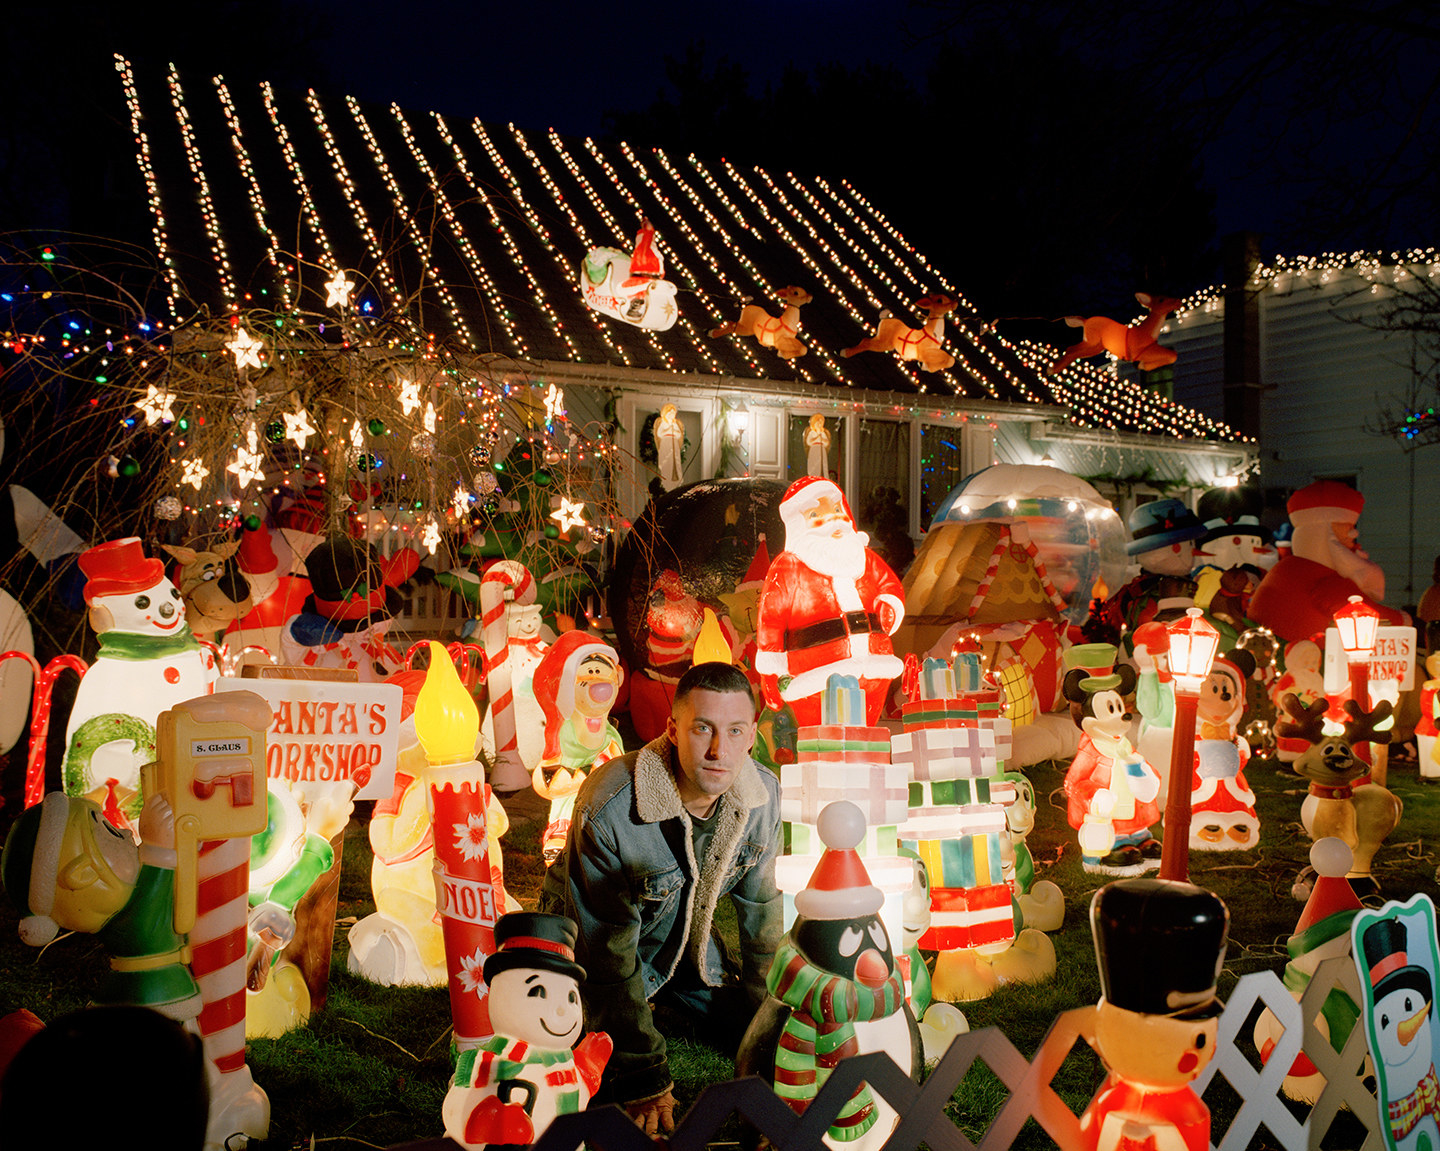 A man surrounded by Christmas ornaments on a lawn in front of a house